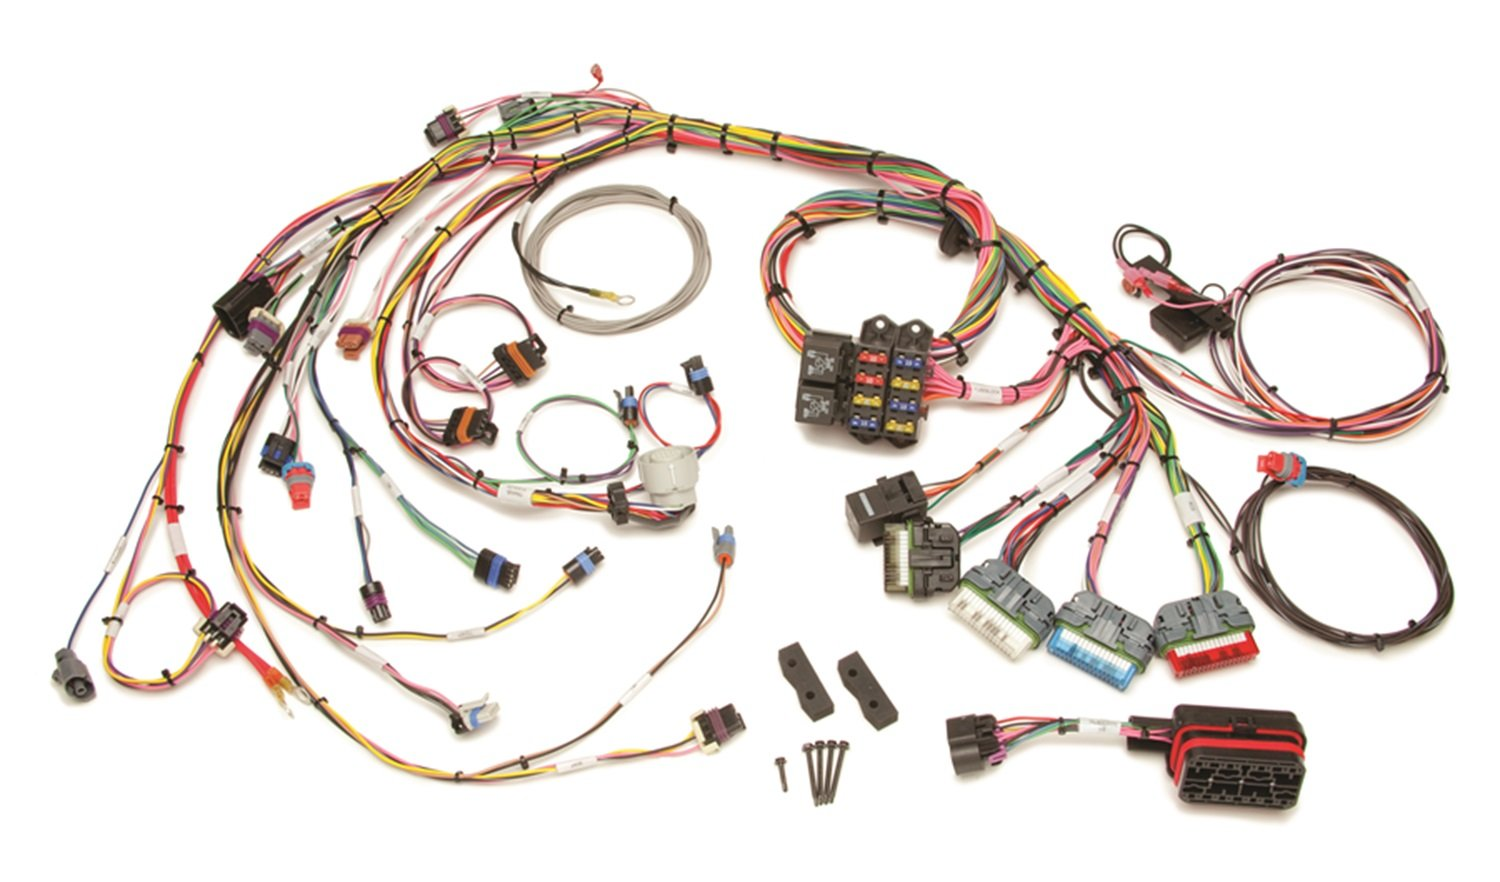 Amazon.com: Painless Wiring 60213 Fuel Injection Wiring ... on painless switch panel, painless fuse box, painless lt1 harness,